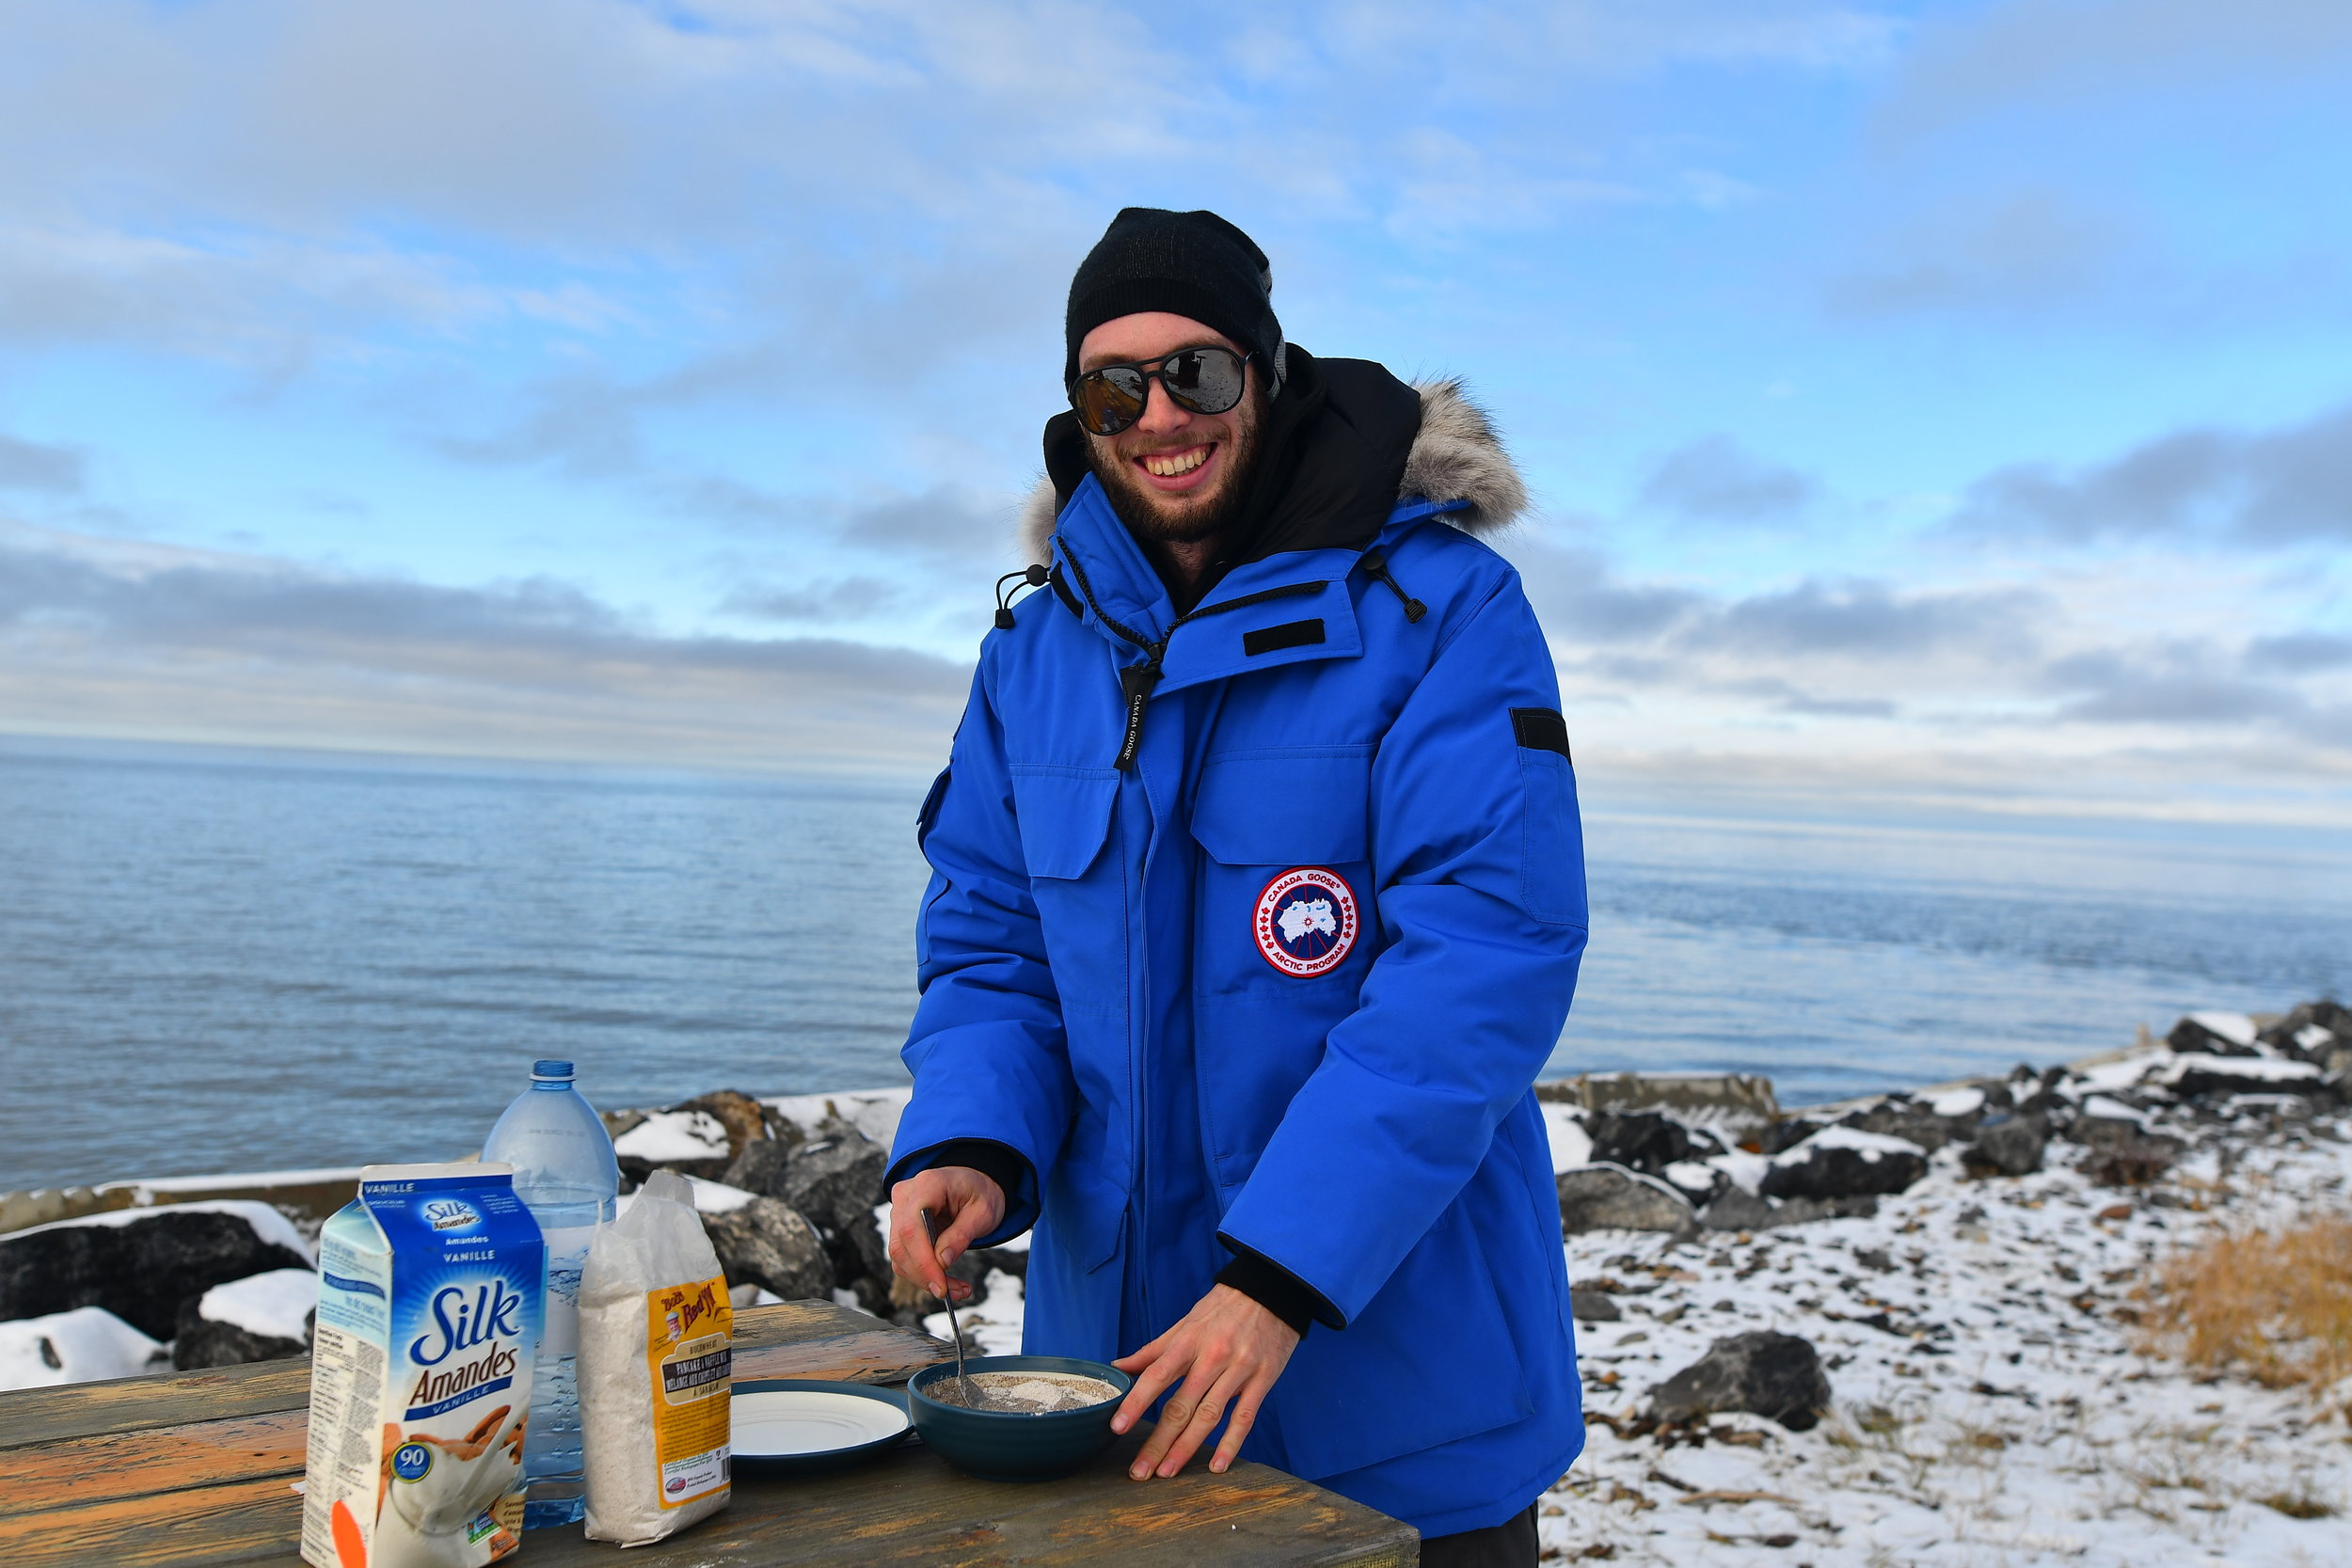 Cookin' buckwheat pancakes by the Arctic Sea.